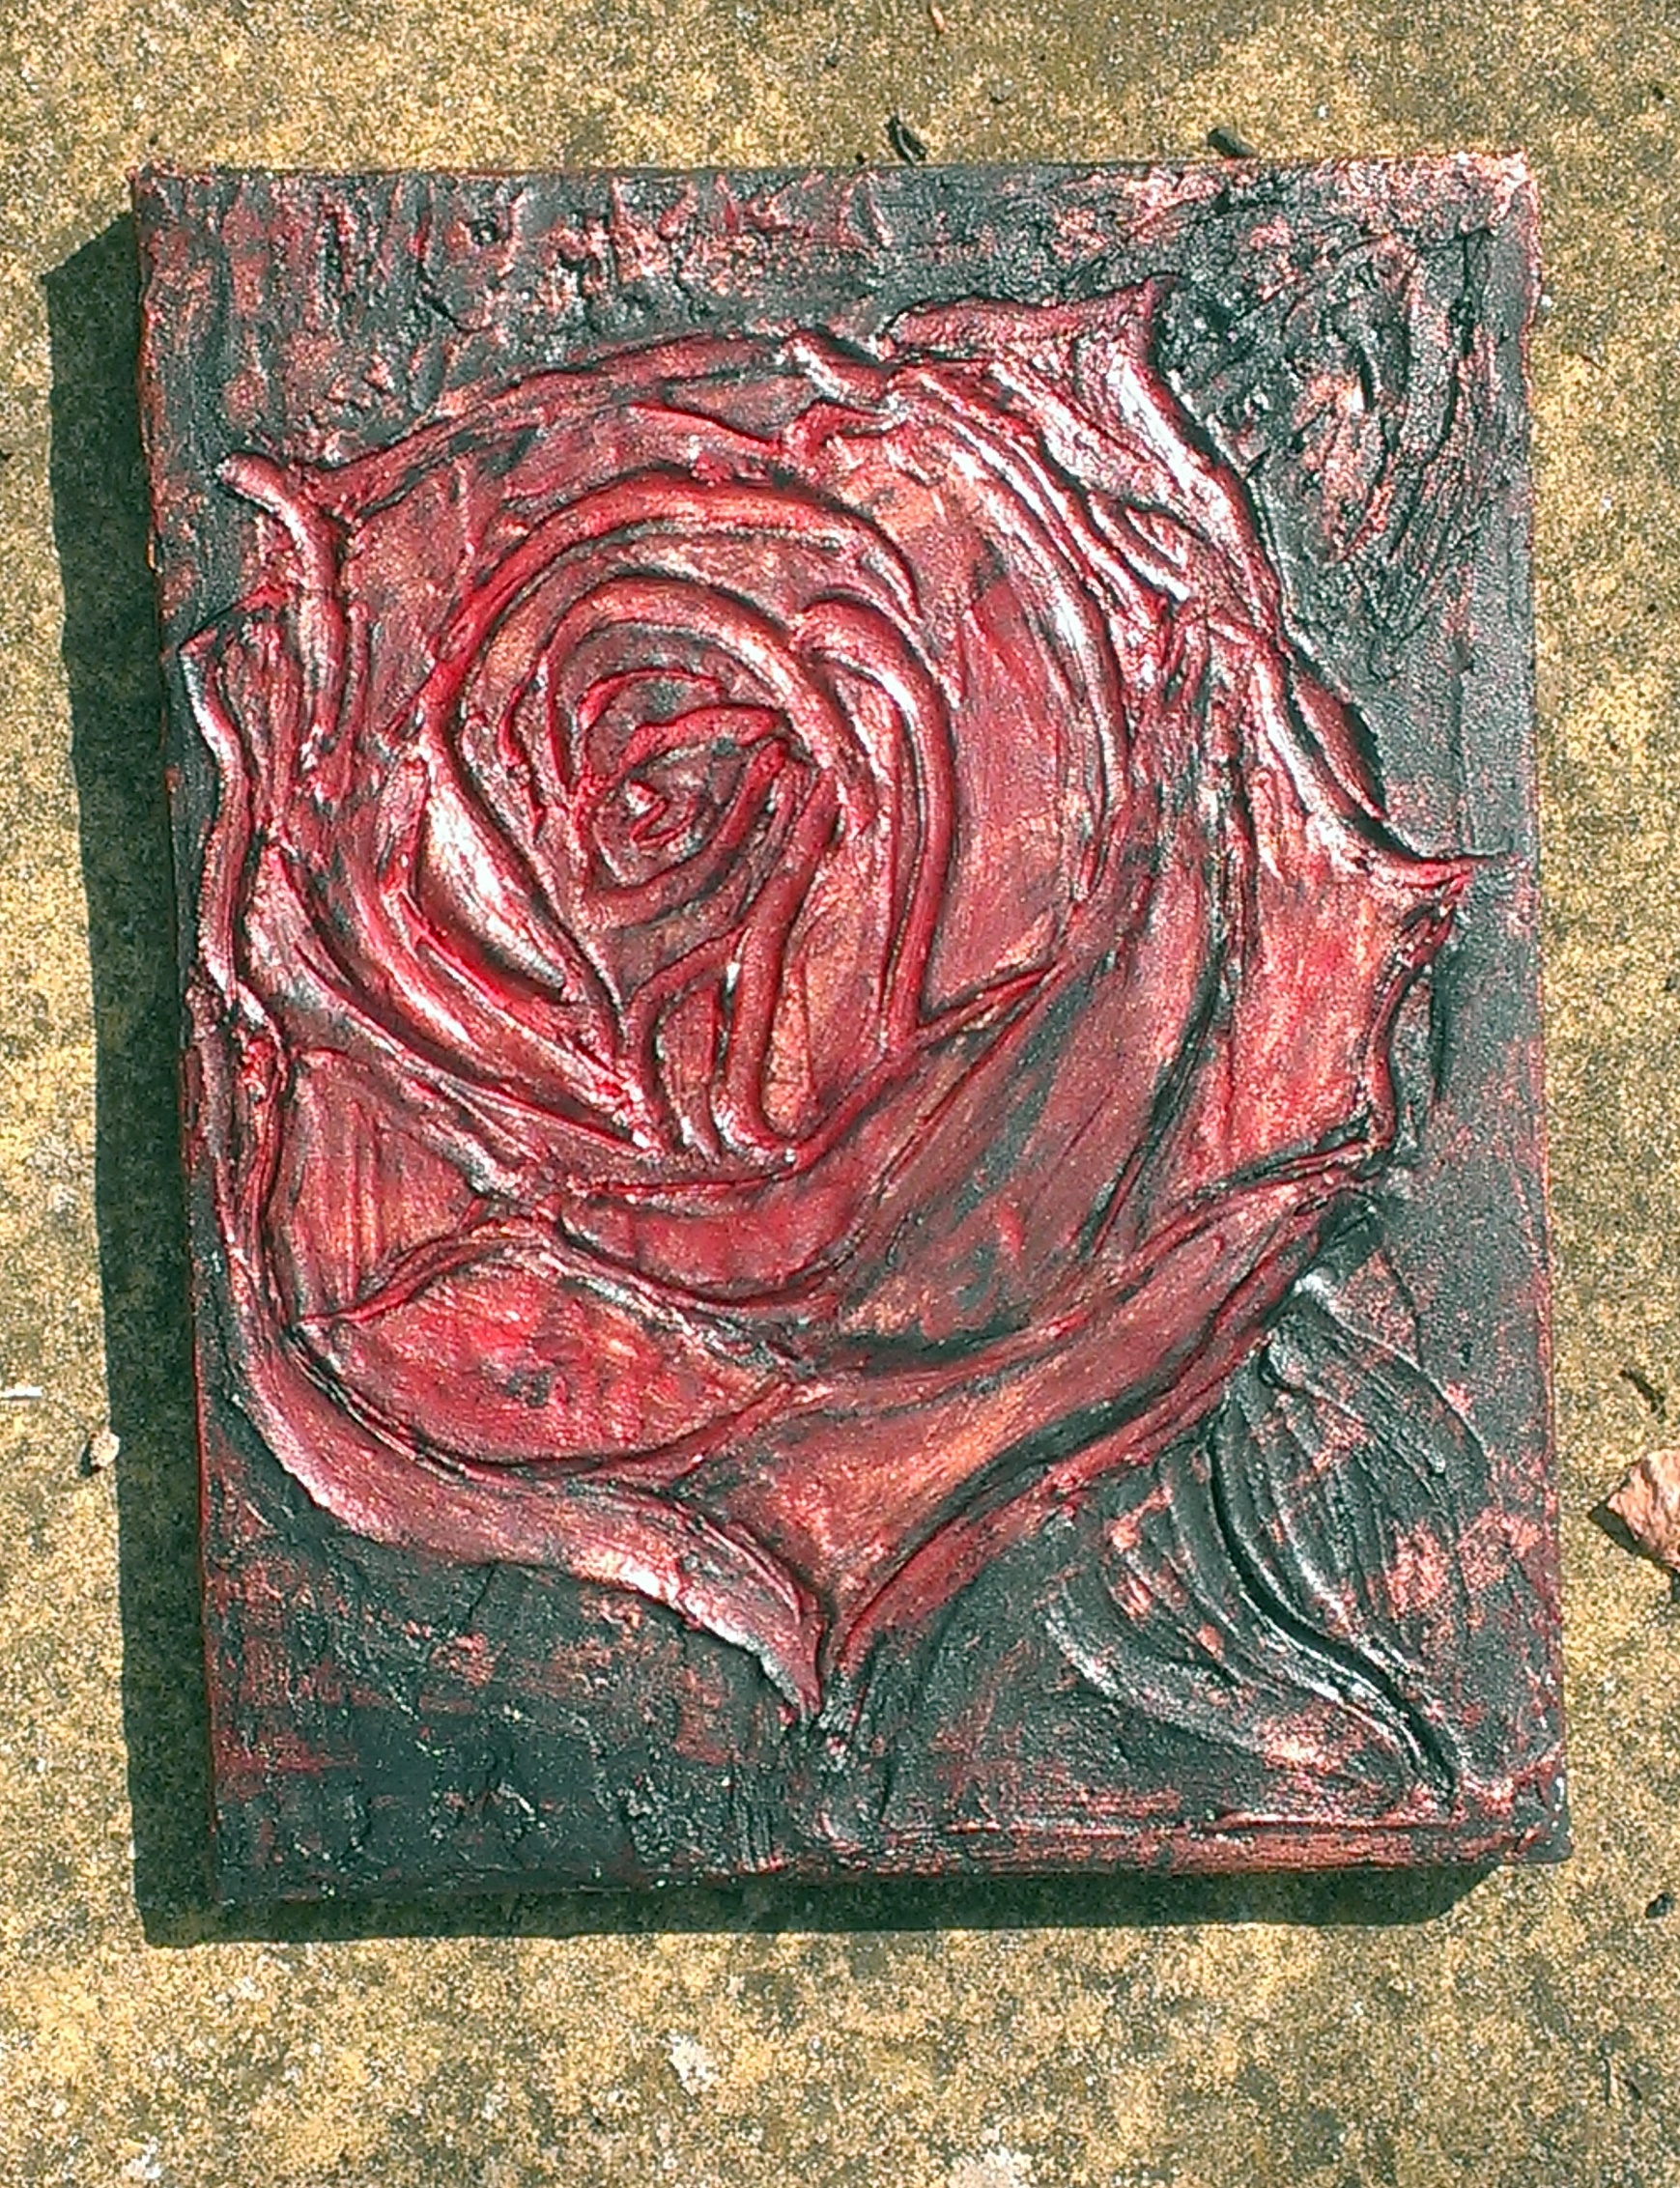 Gothic textured rose bronze metallic with red and black hues hand painted made by samirhall 8x10 canvas